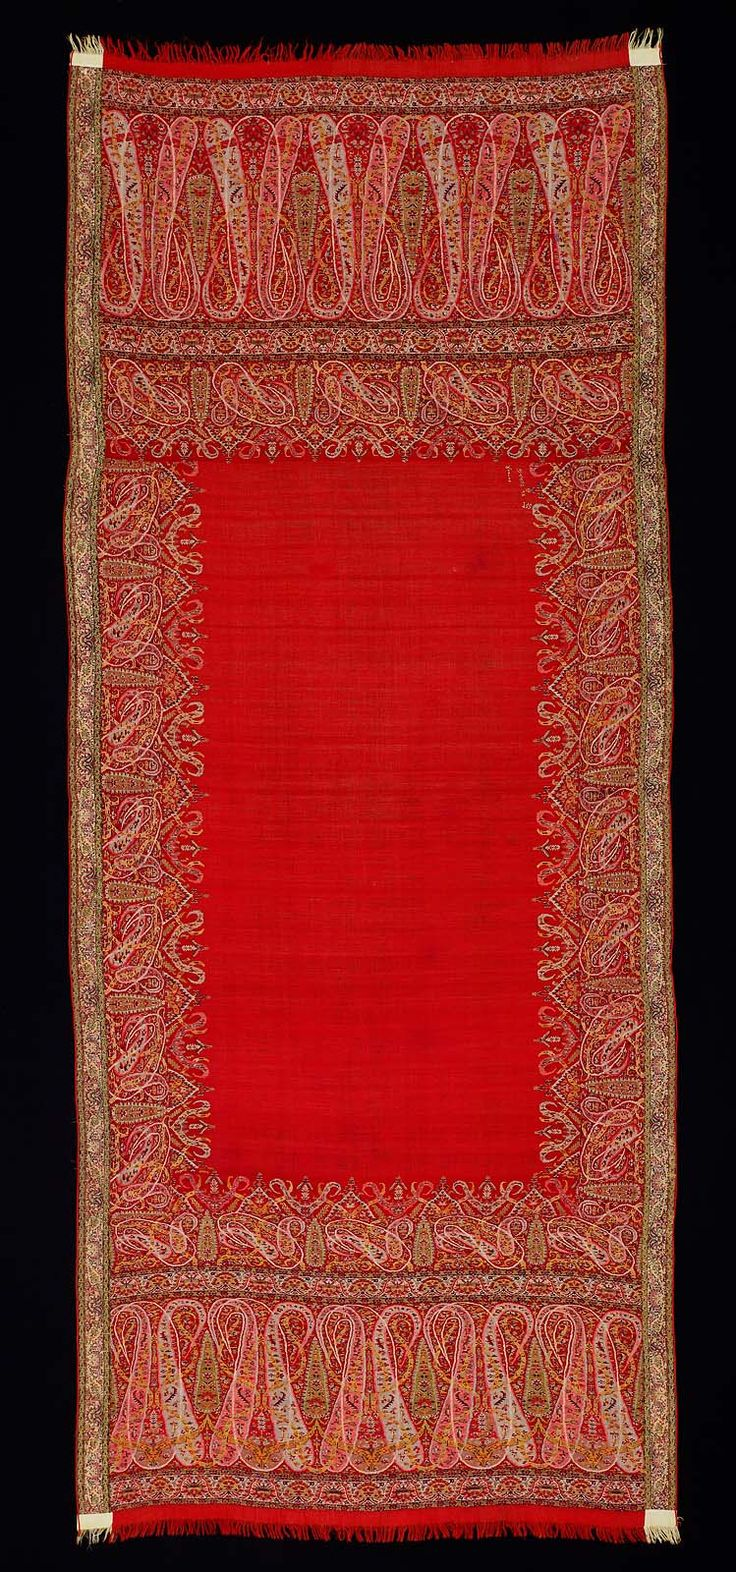 Paisley shawl   Iranian   Dated 1835 - 1840 A.D.   Cashmere wool   Appears to be a kani weave   Elongated buta shapes along the top and bottom came into style in the early/mid 19th century (1820s-1830s)   Found in the Museum of Fine Arts Boston   http://www.mfa.org/collections/object/shawl-73194